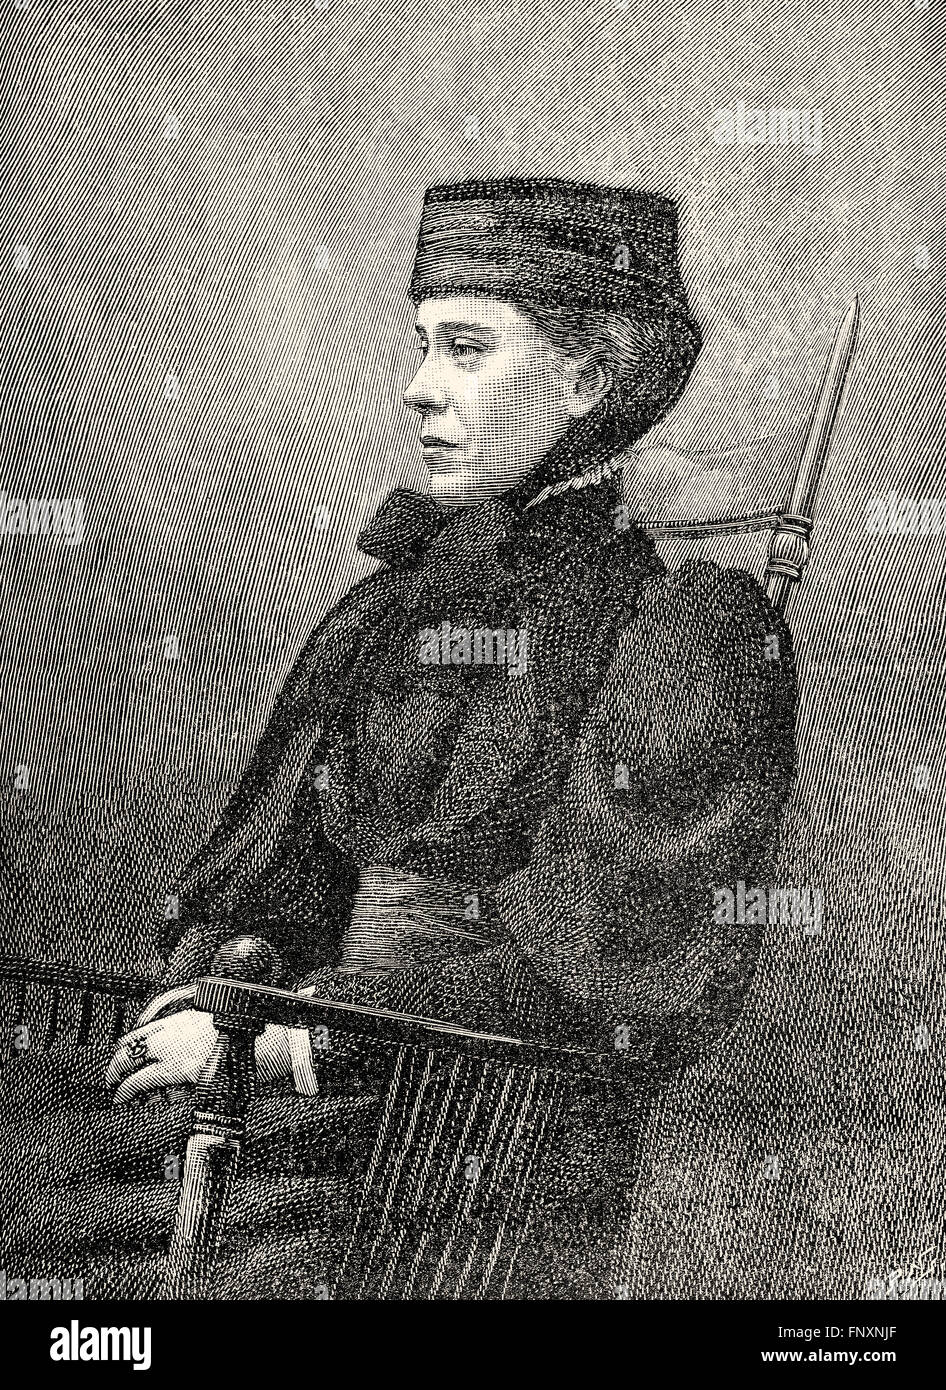 Mary Henrietta Kingsley, 1862-1900, an English ethnographic and scientific writer and explorer - Stock Image